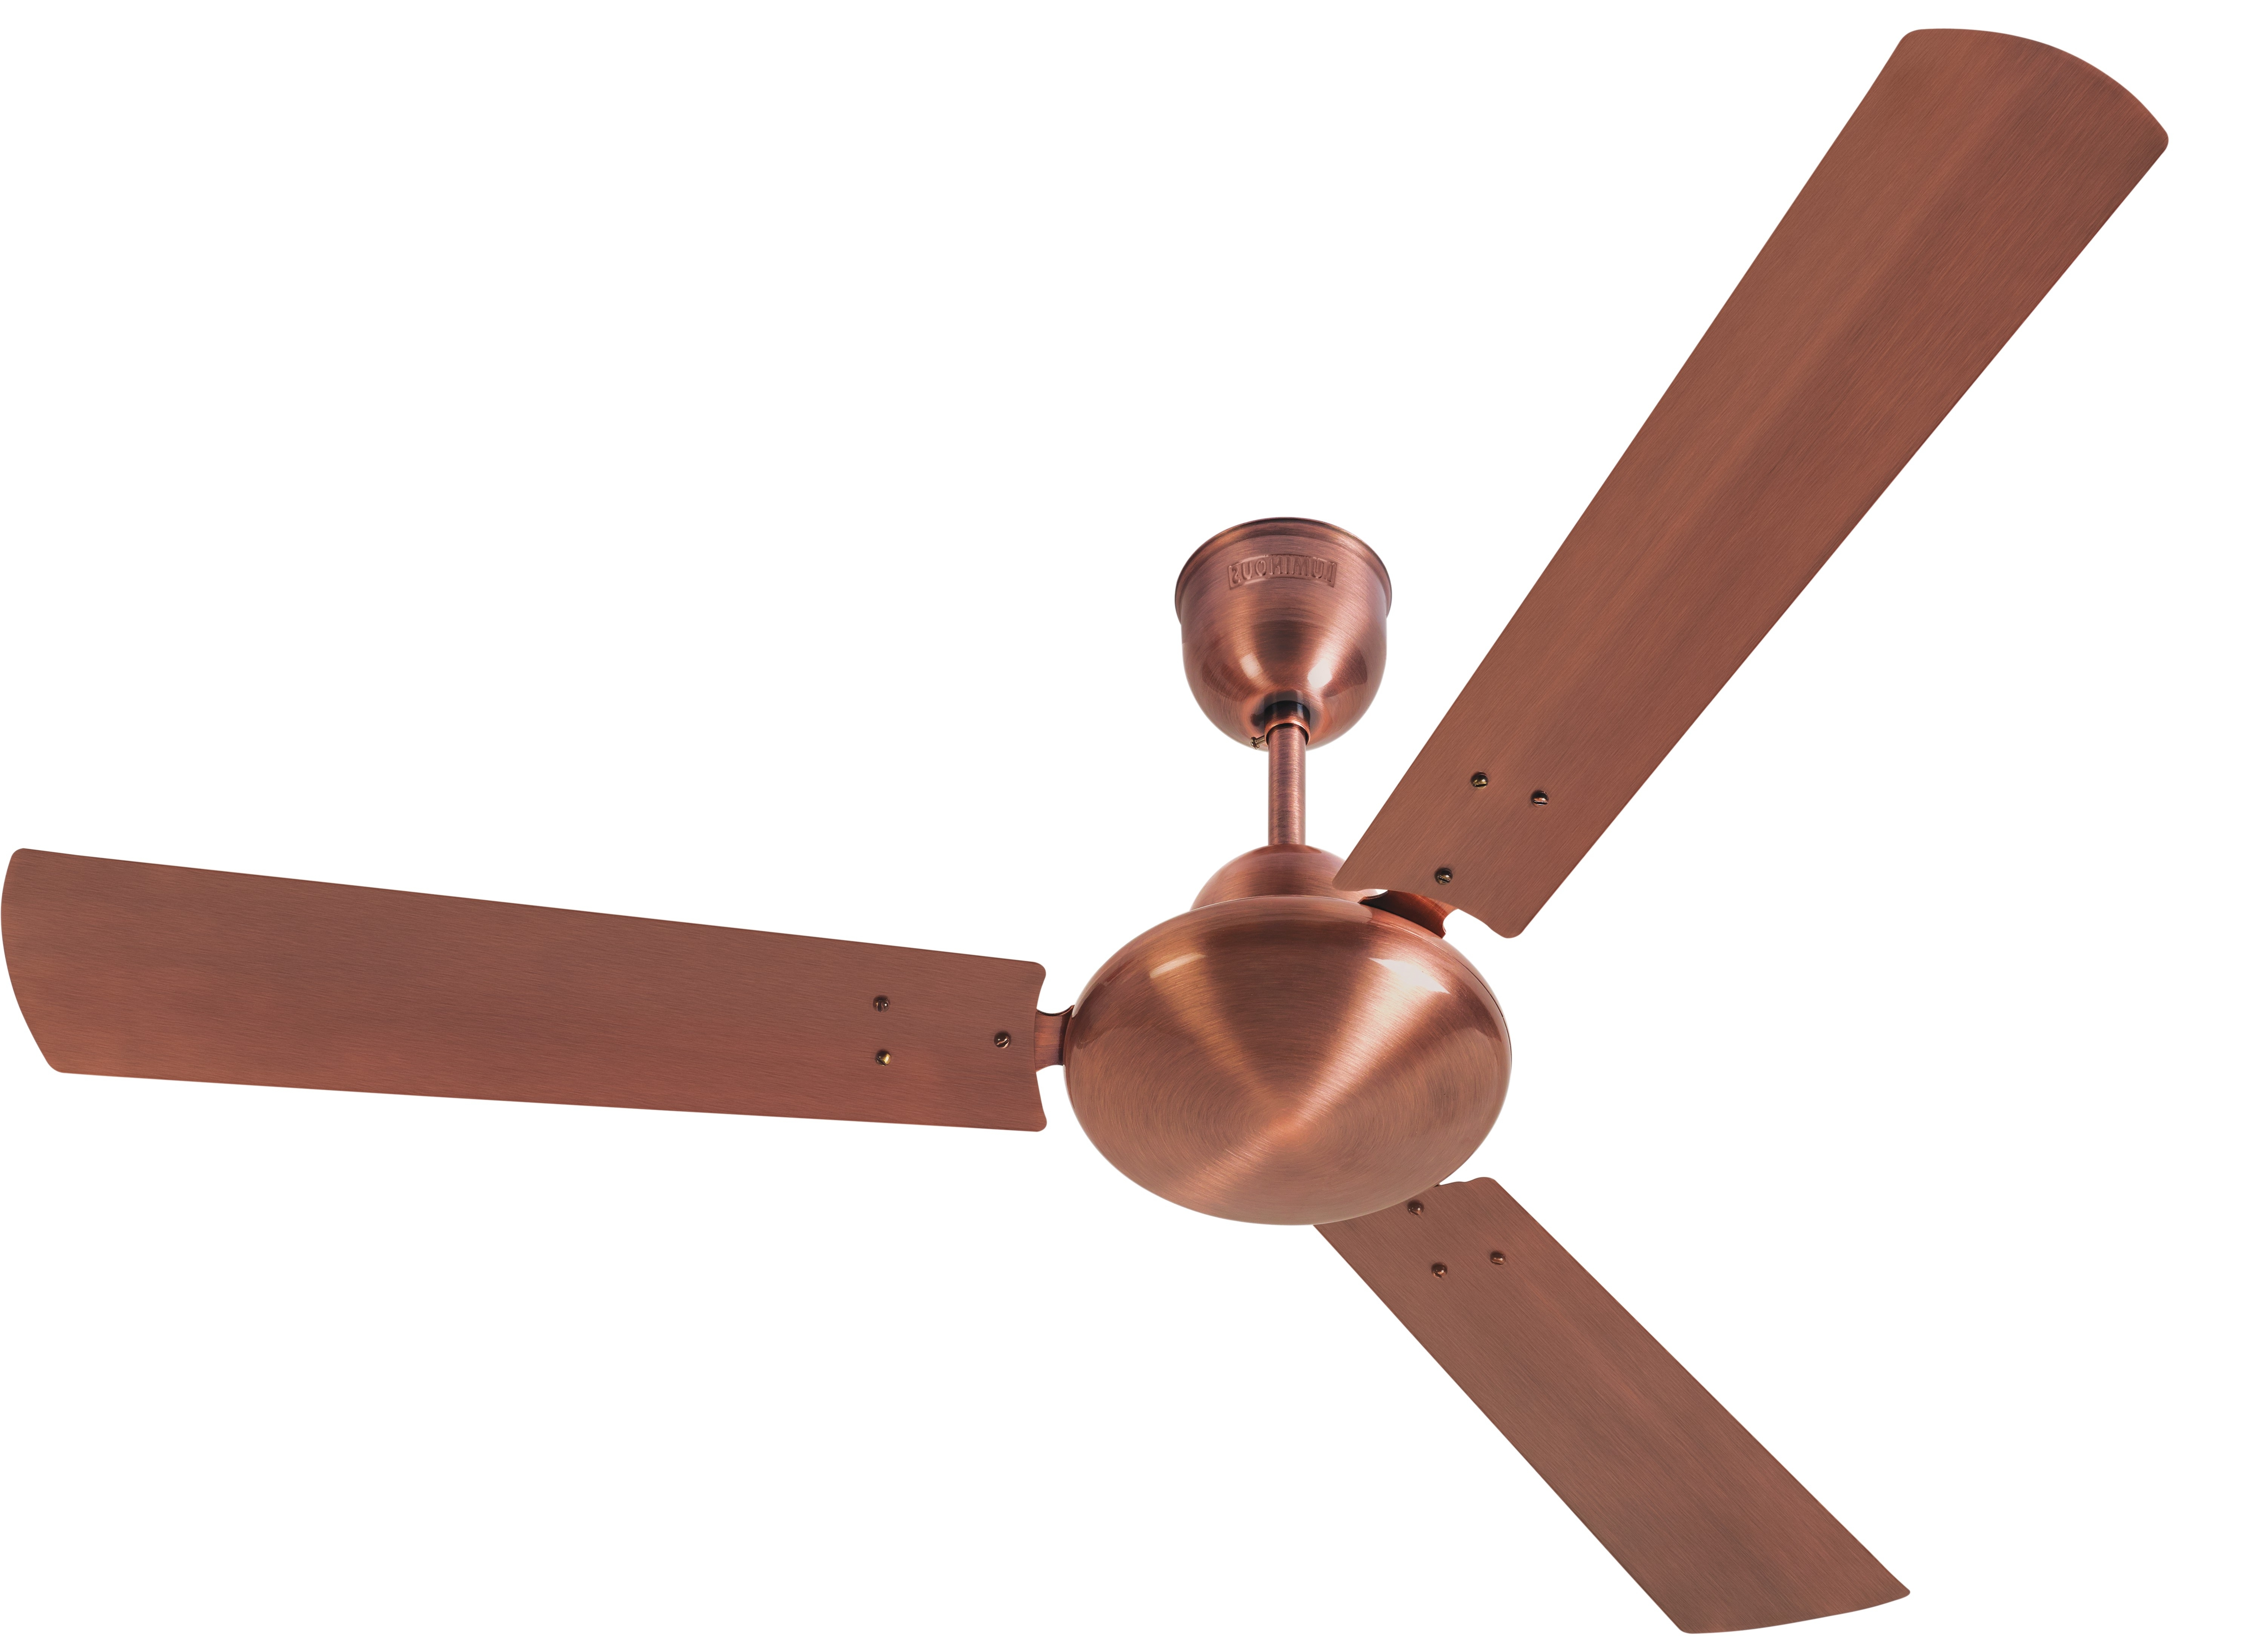 Fashionable Copper Outdoor Ceiling Fans Regarding 39 Copper Ceiling Fan With Light, Copper Ceiling Fan With Light (Gallery 4 of 20)